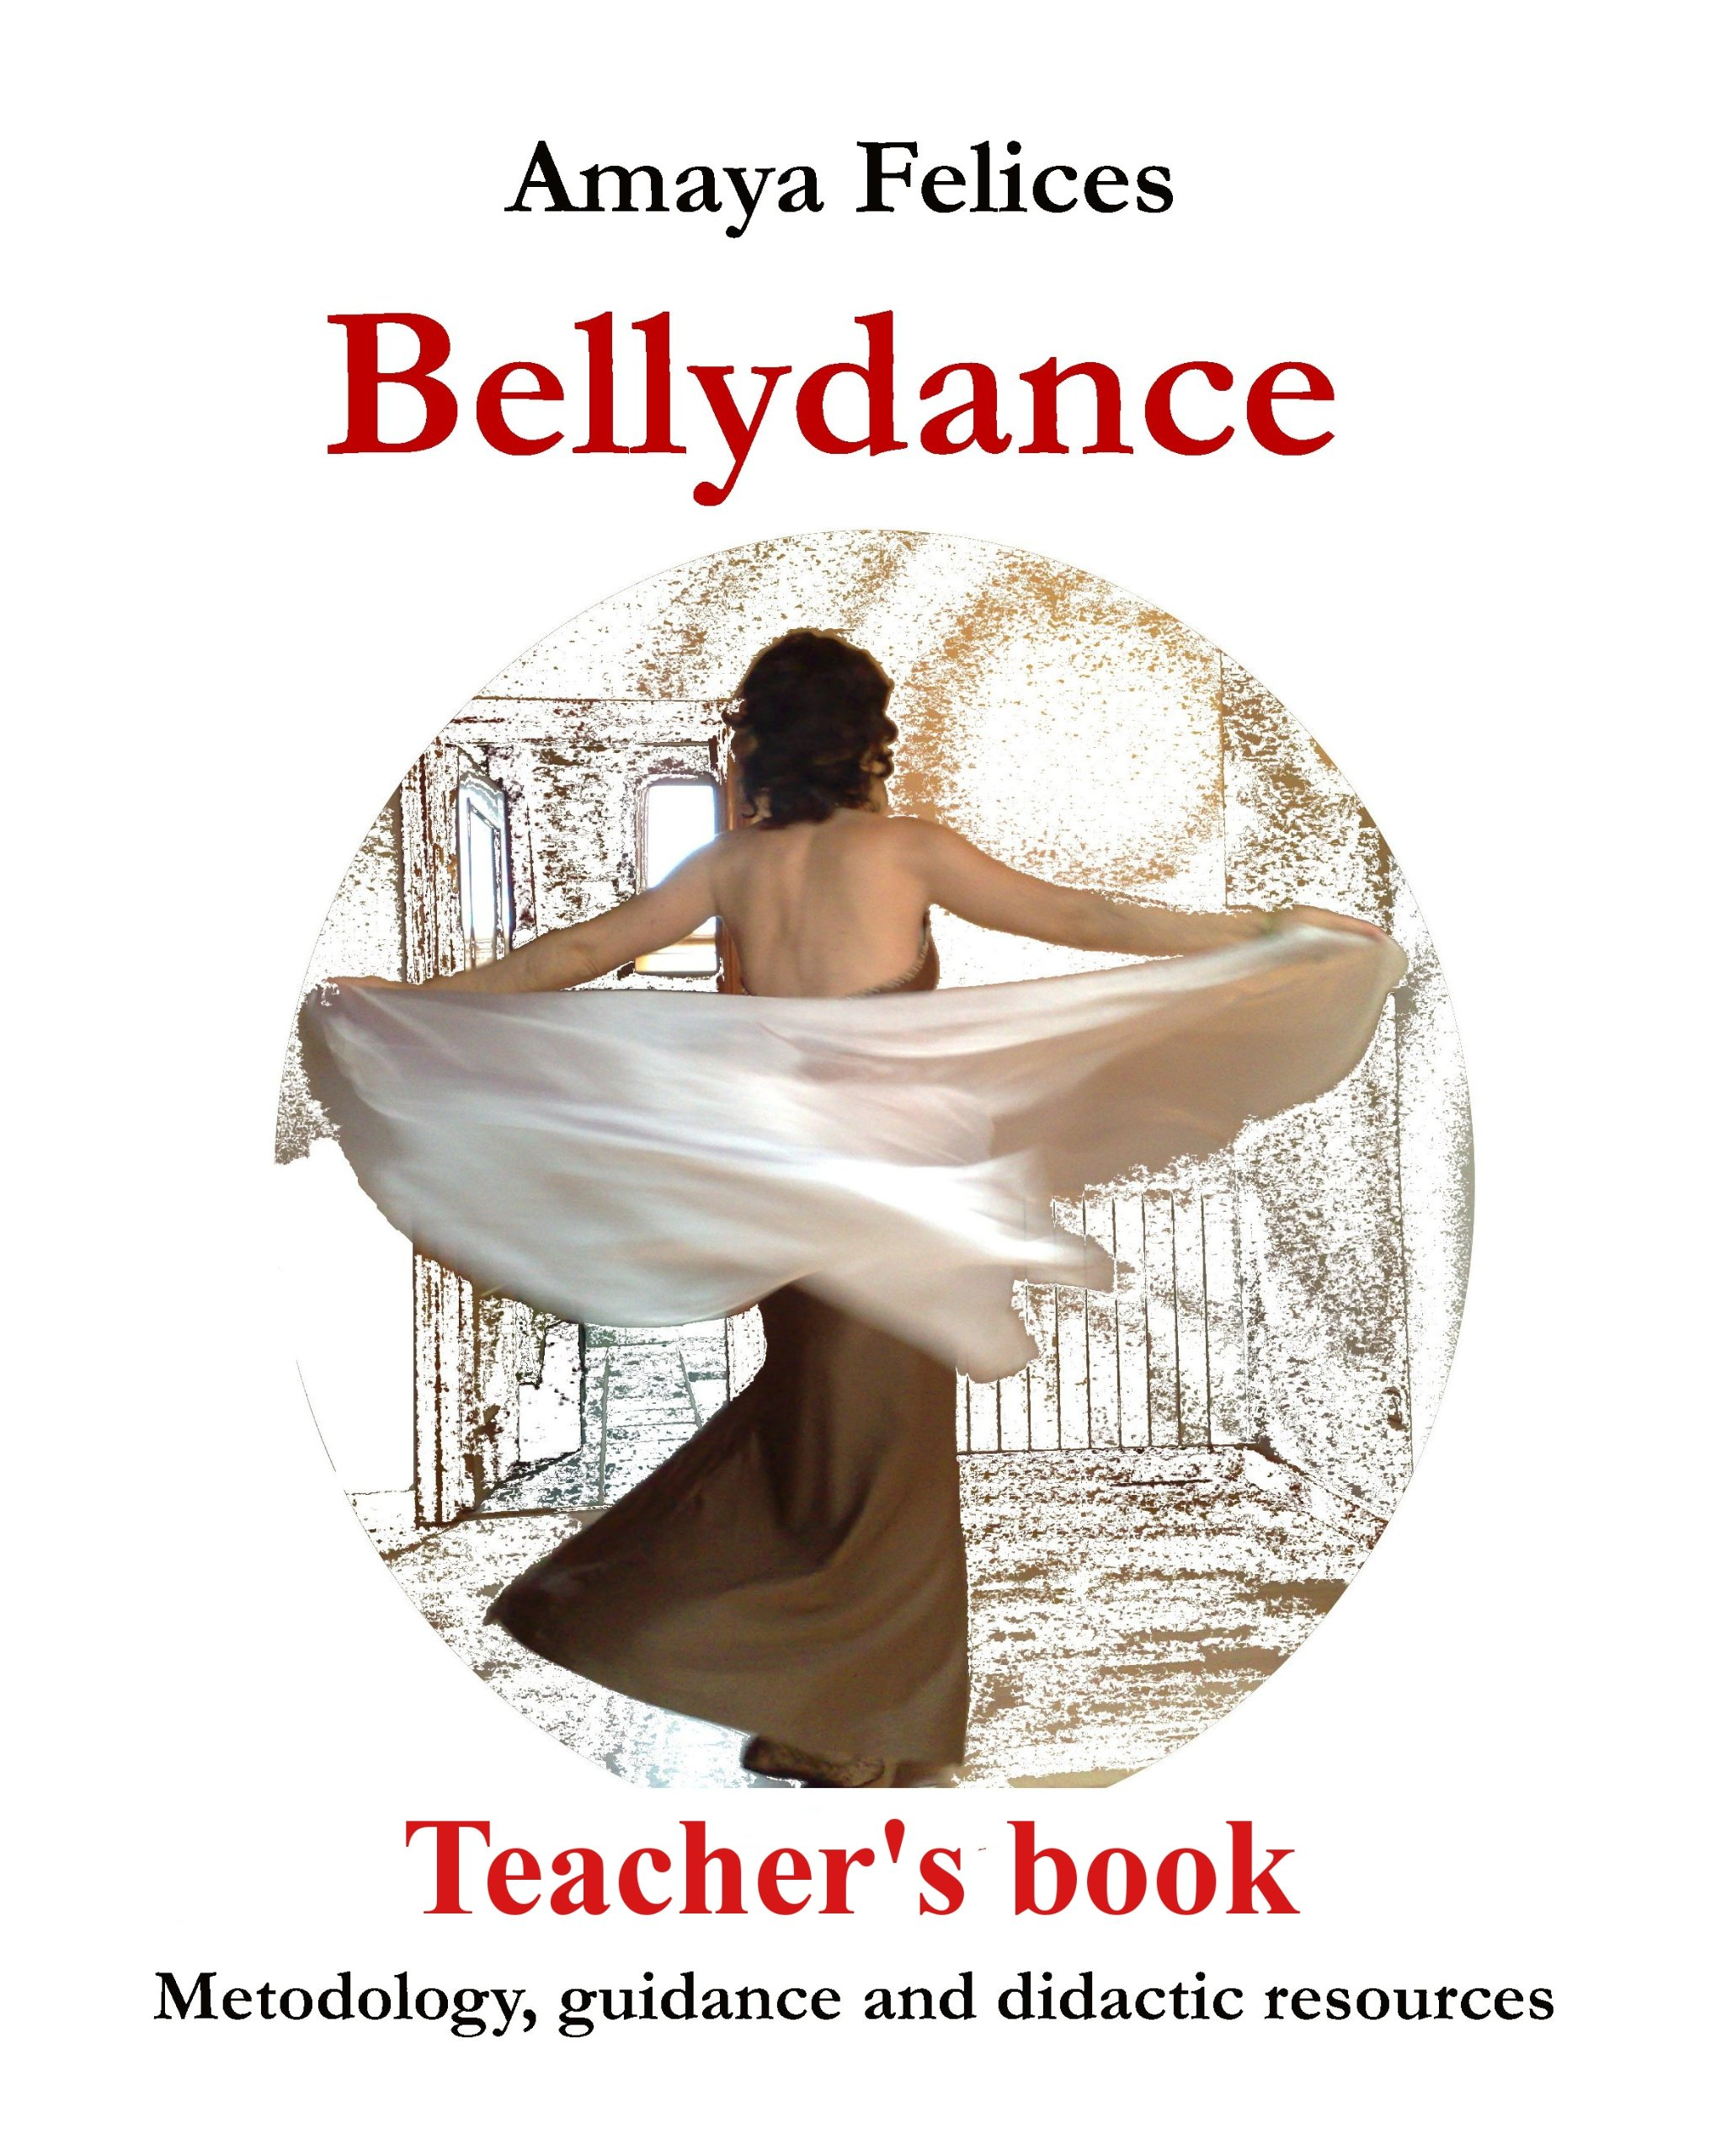 Bellydance: Teacher's book (Methodology guidance and didactic resources) (English Edition)